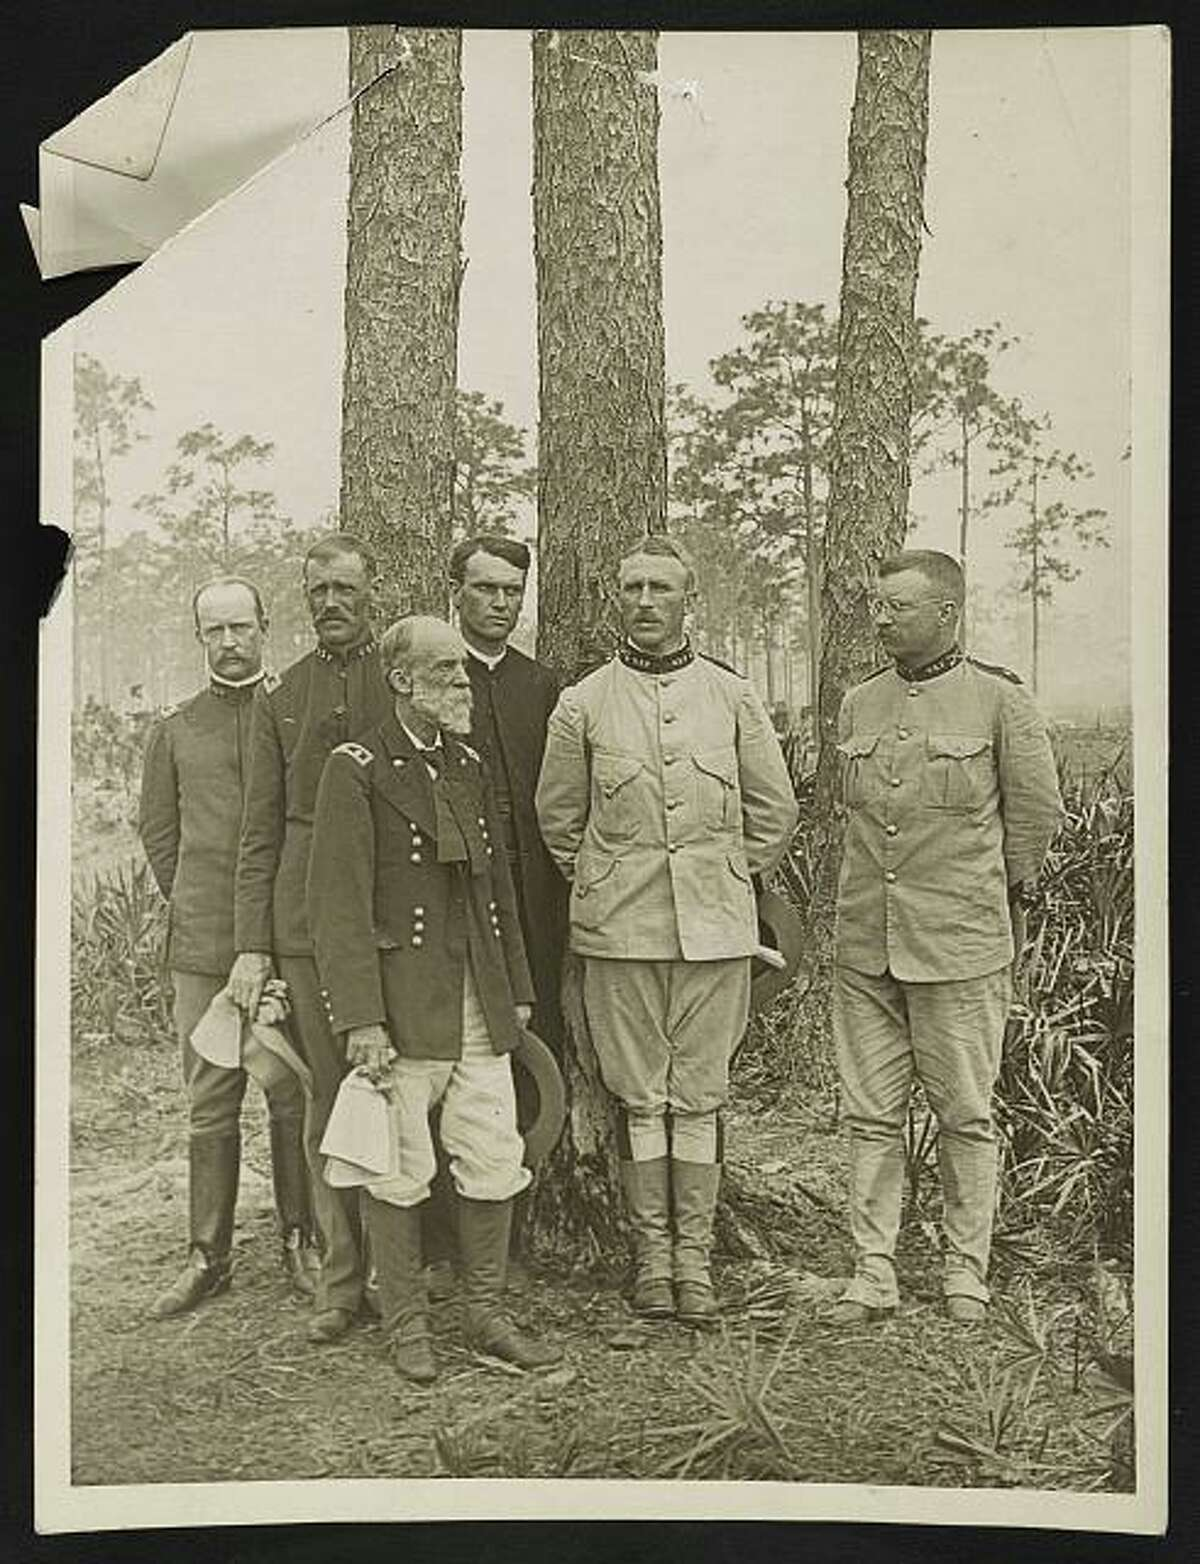 Wheeler, now a U.S. Army general, commanded all cavalry troops in Cuba in the Spanish-American War. Theodore Roosevelt is at far right.